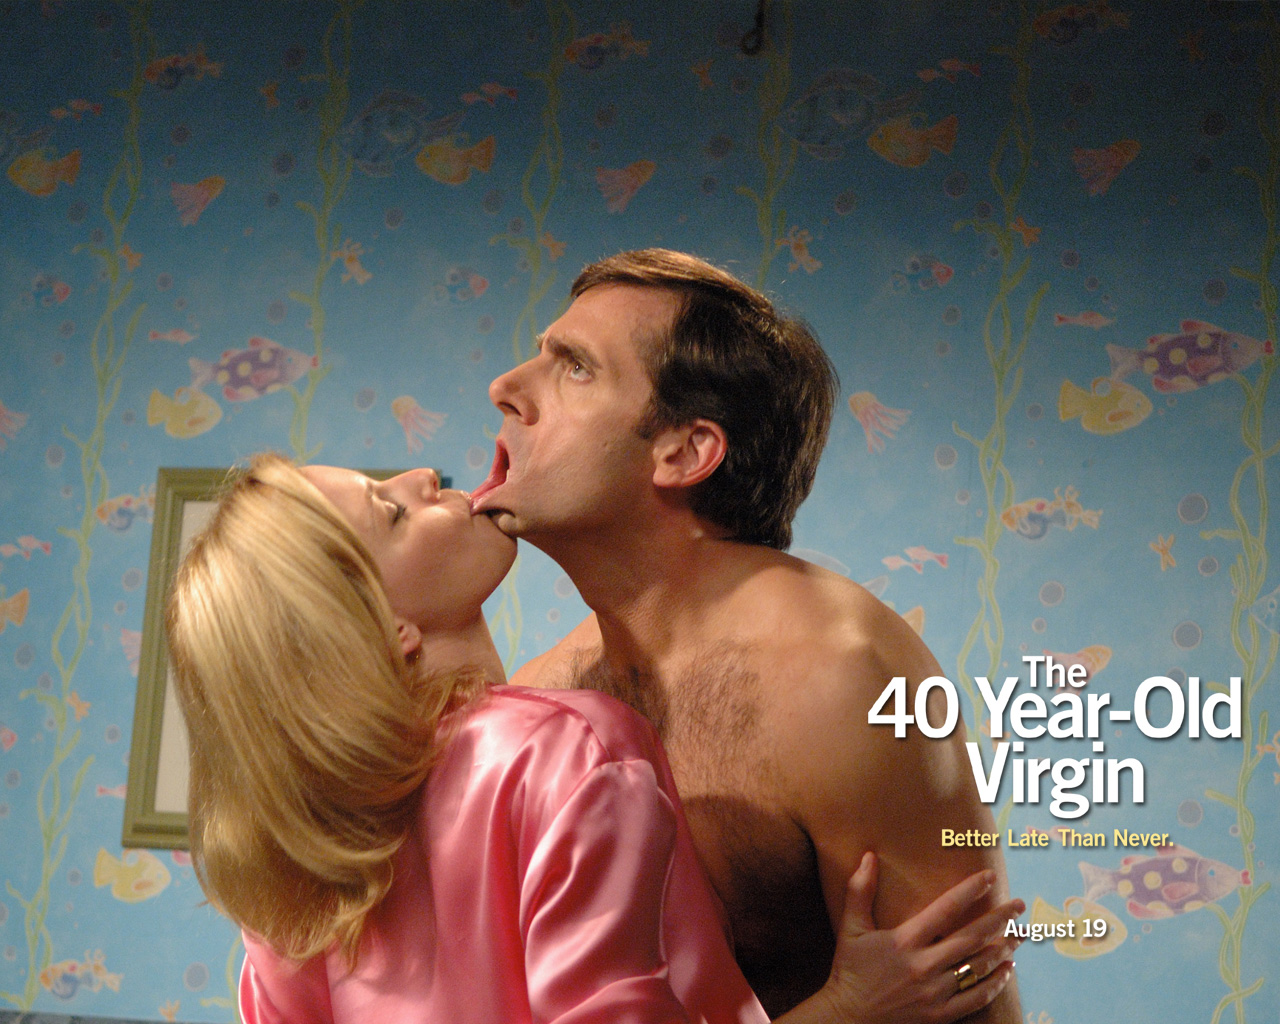 the 40-year old virgin